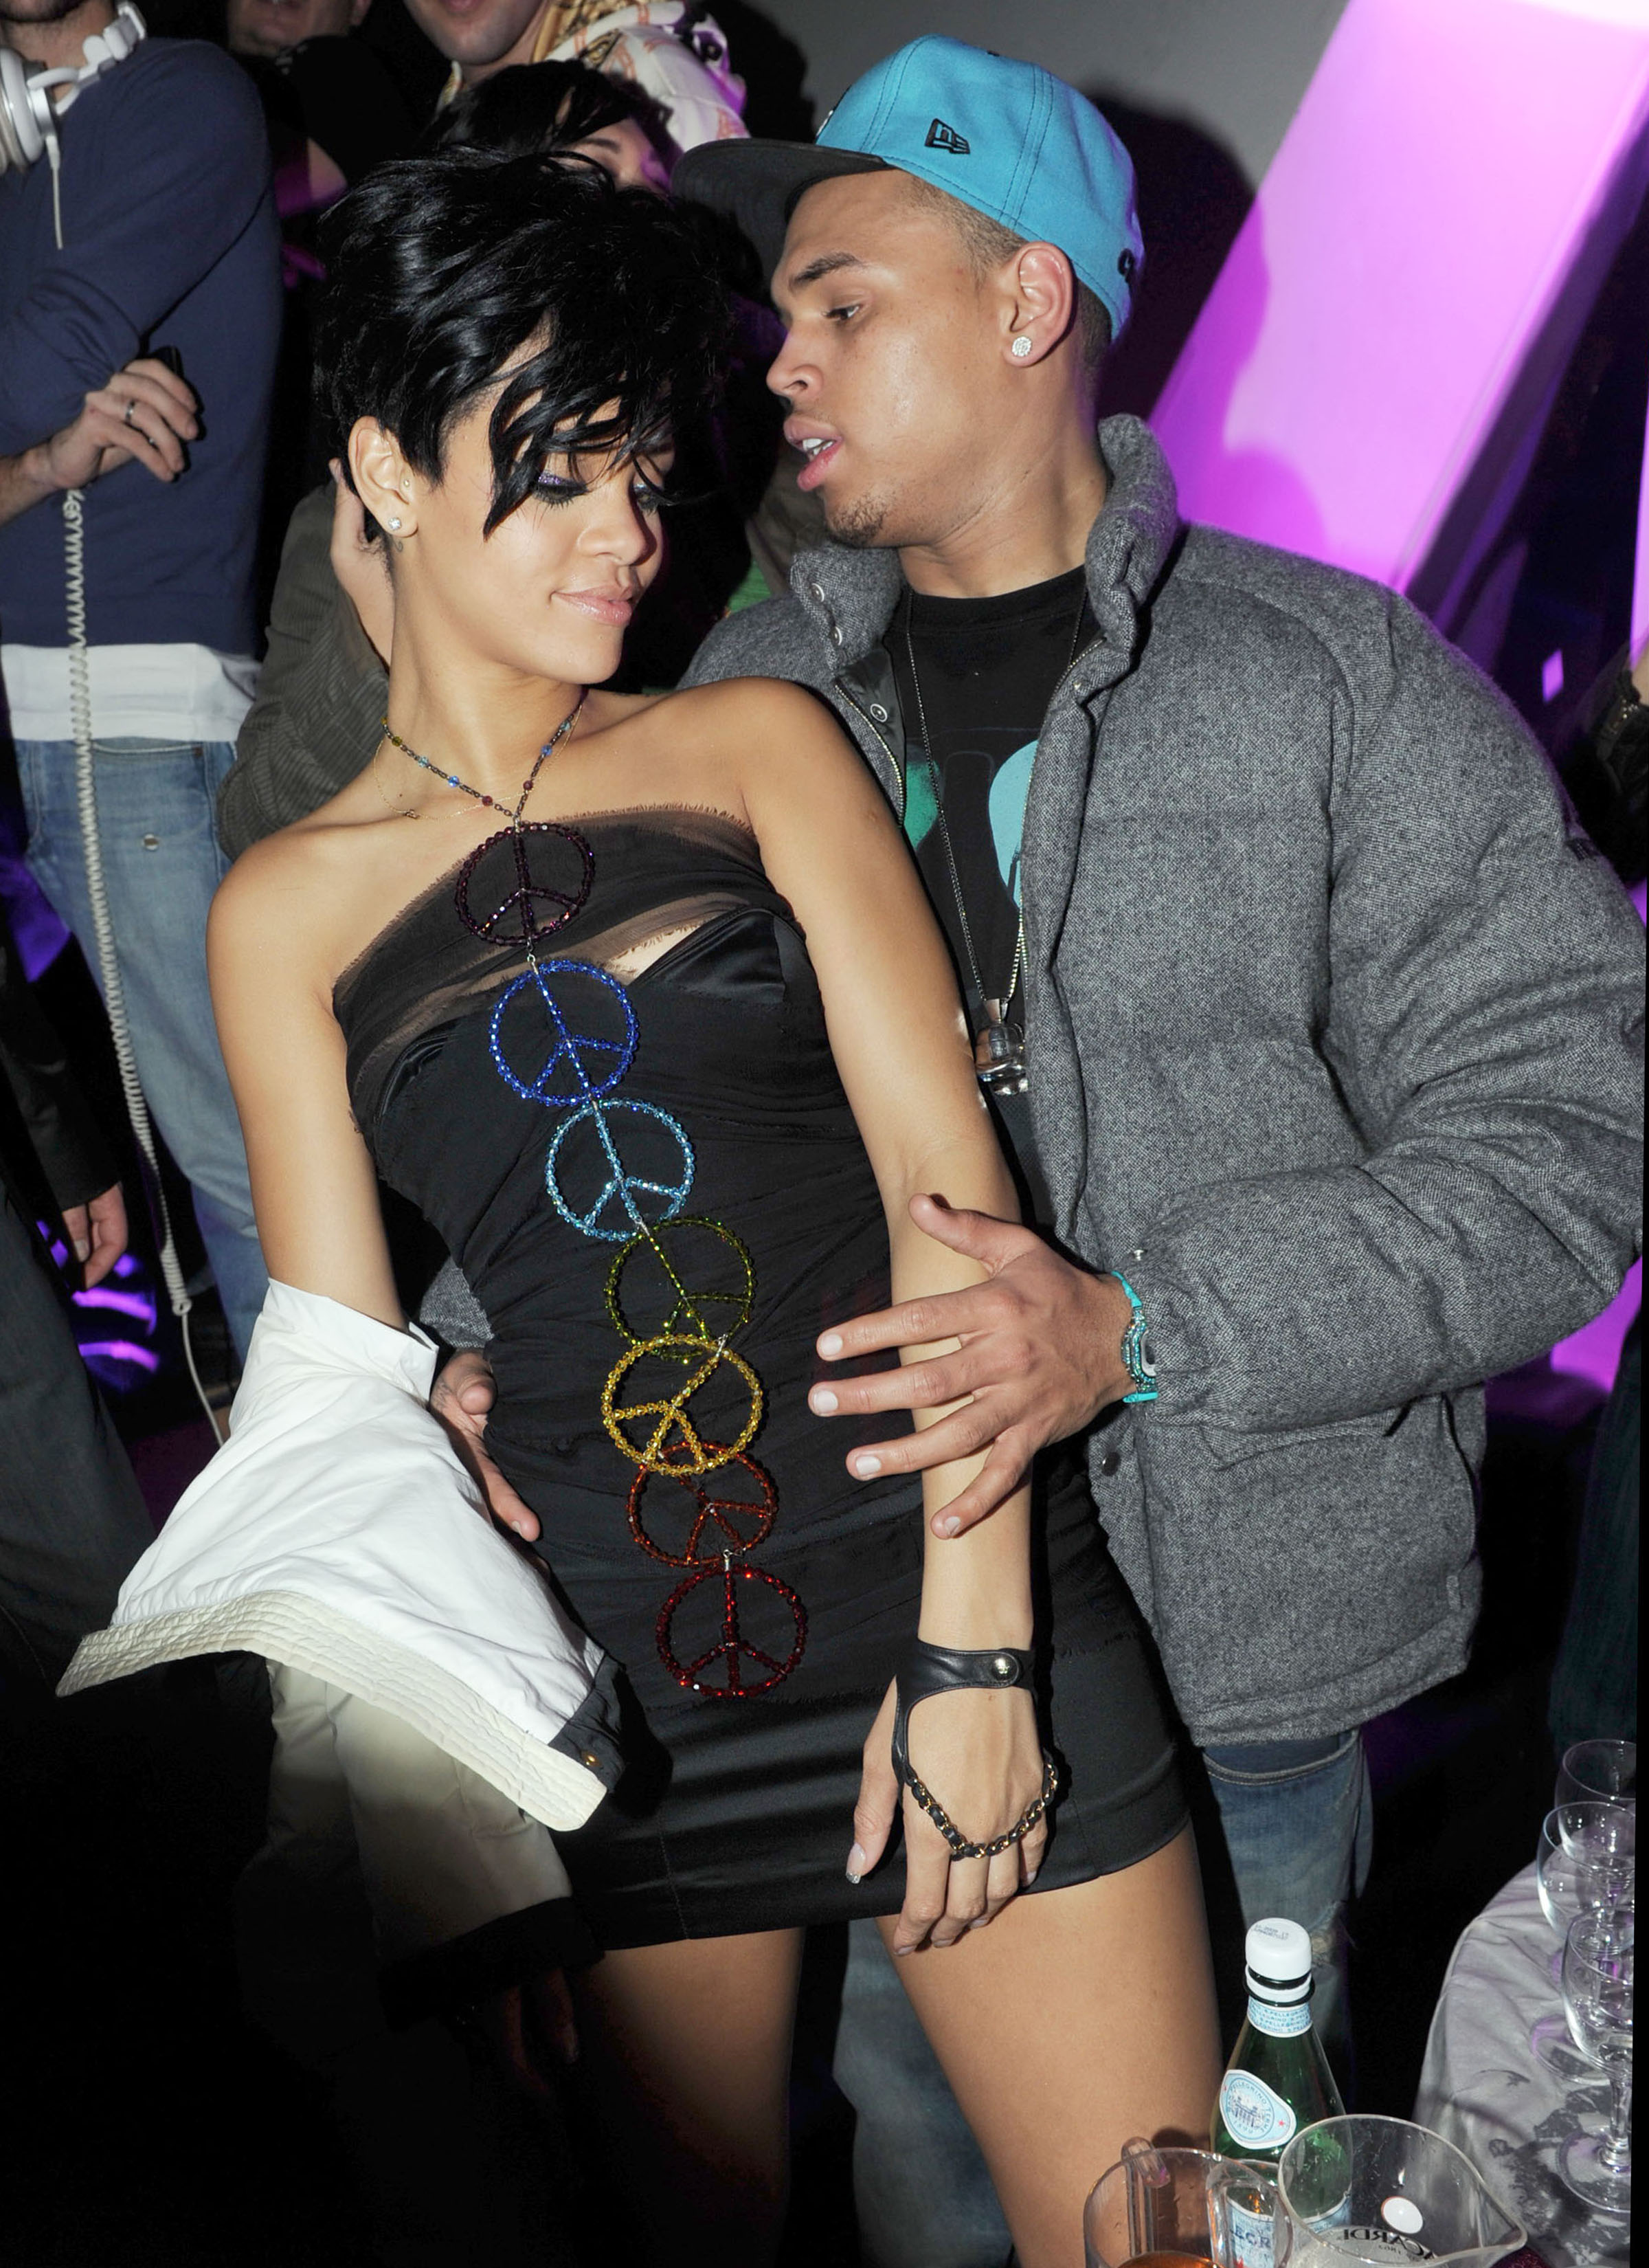 rihanna pics leaked by chris brown. Chris Brown Ogles Rihanna